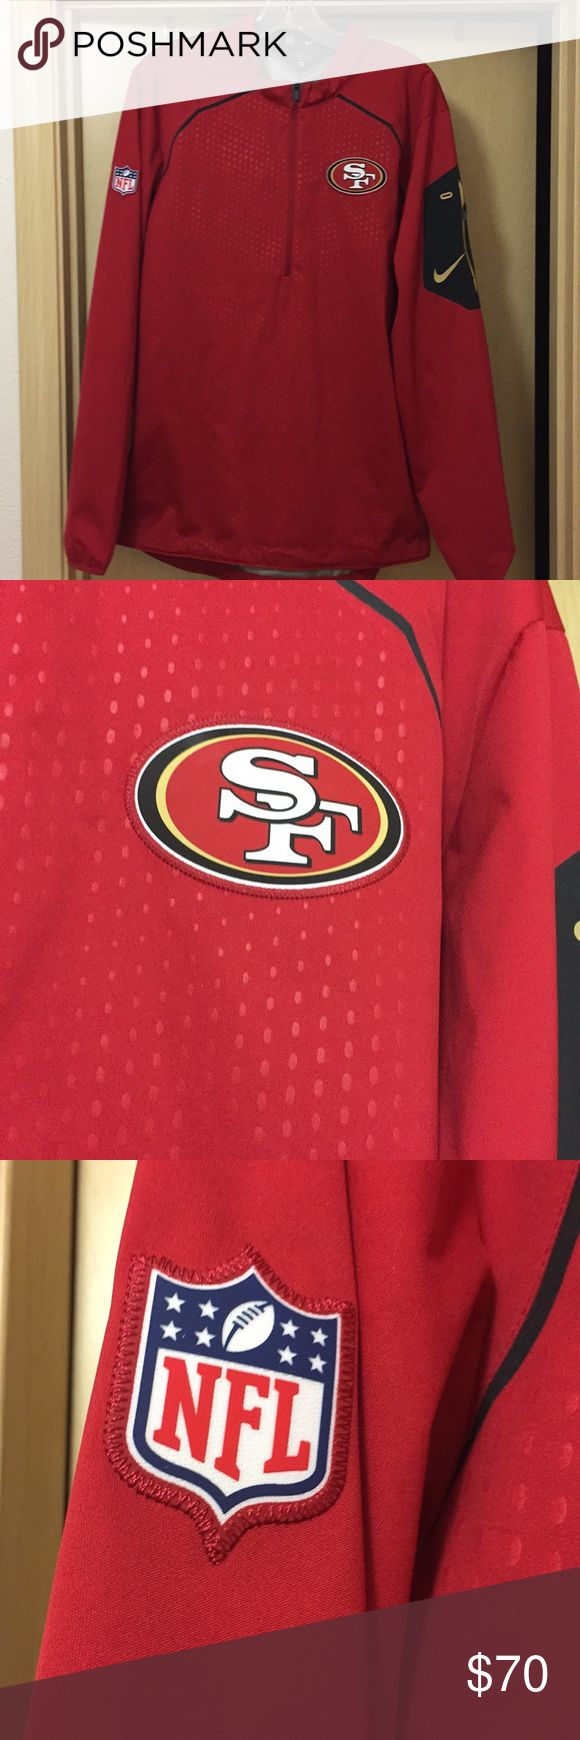 Nike 49ers jacket Men's size Medium. Like new condition Nike Jackets & Coats